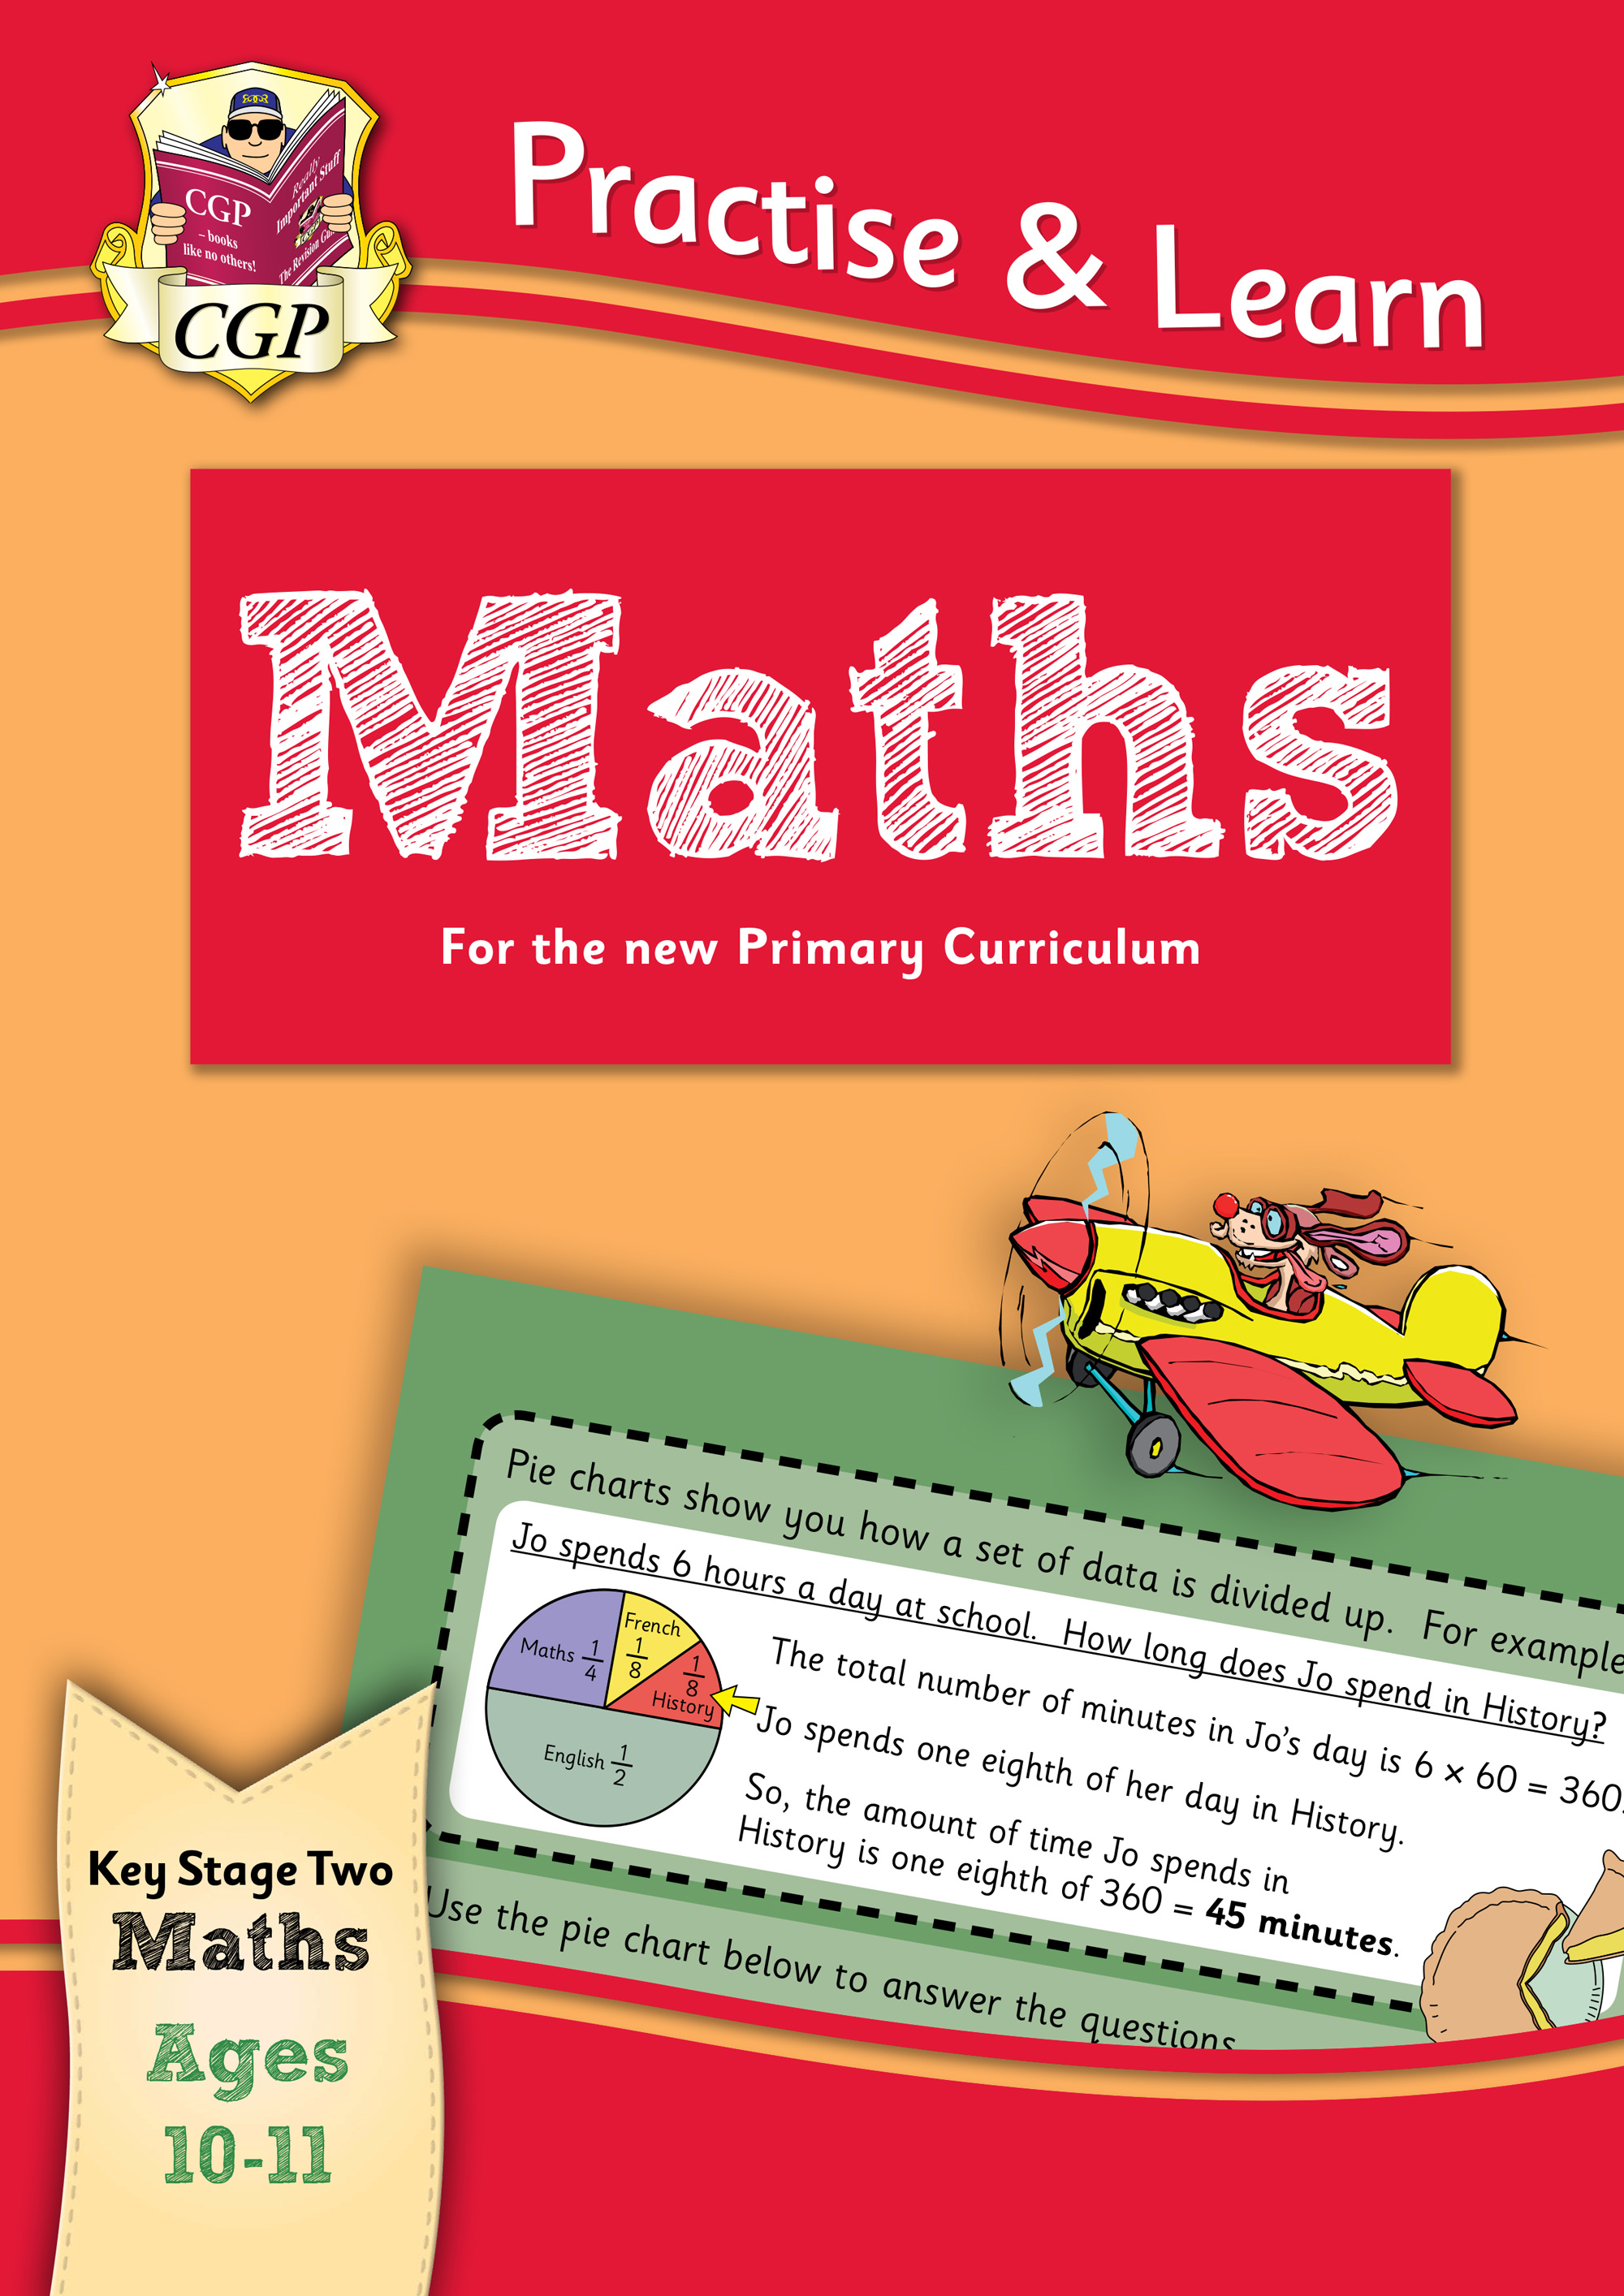 MP6Q22DK - New Curriculum Practise & Learn: Maths for Ages 10-11